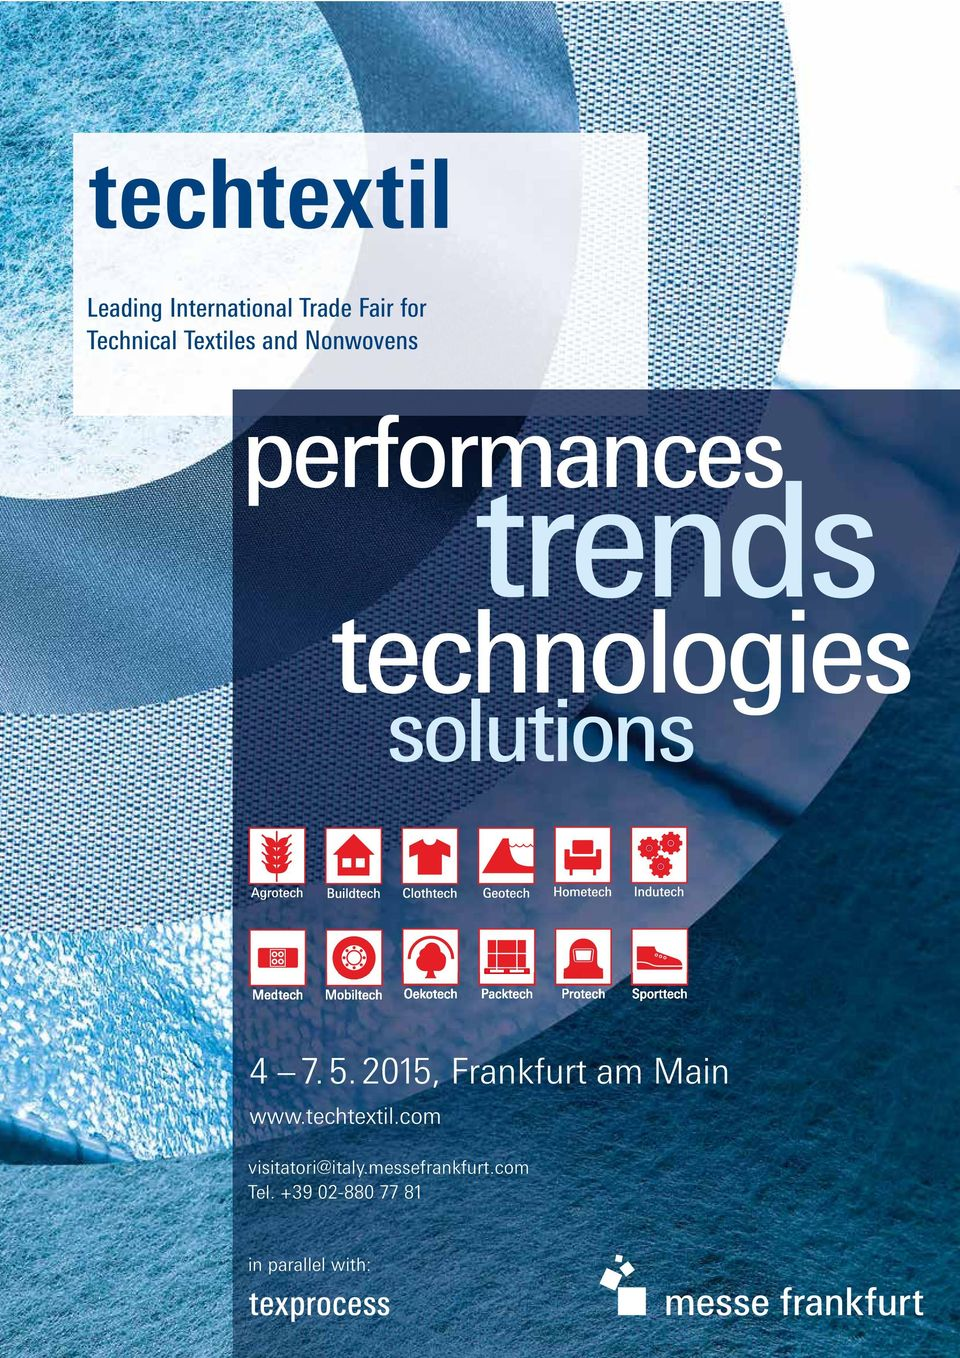 solutions 4 7. 5. 2015, Frankfurt am Main www.techtextil.